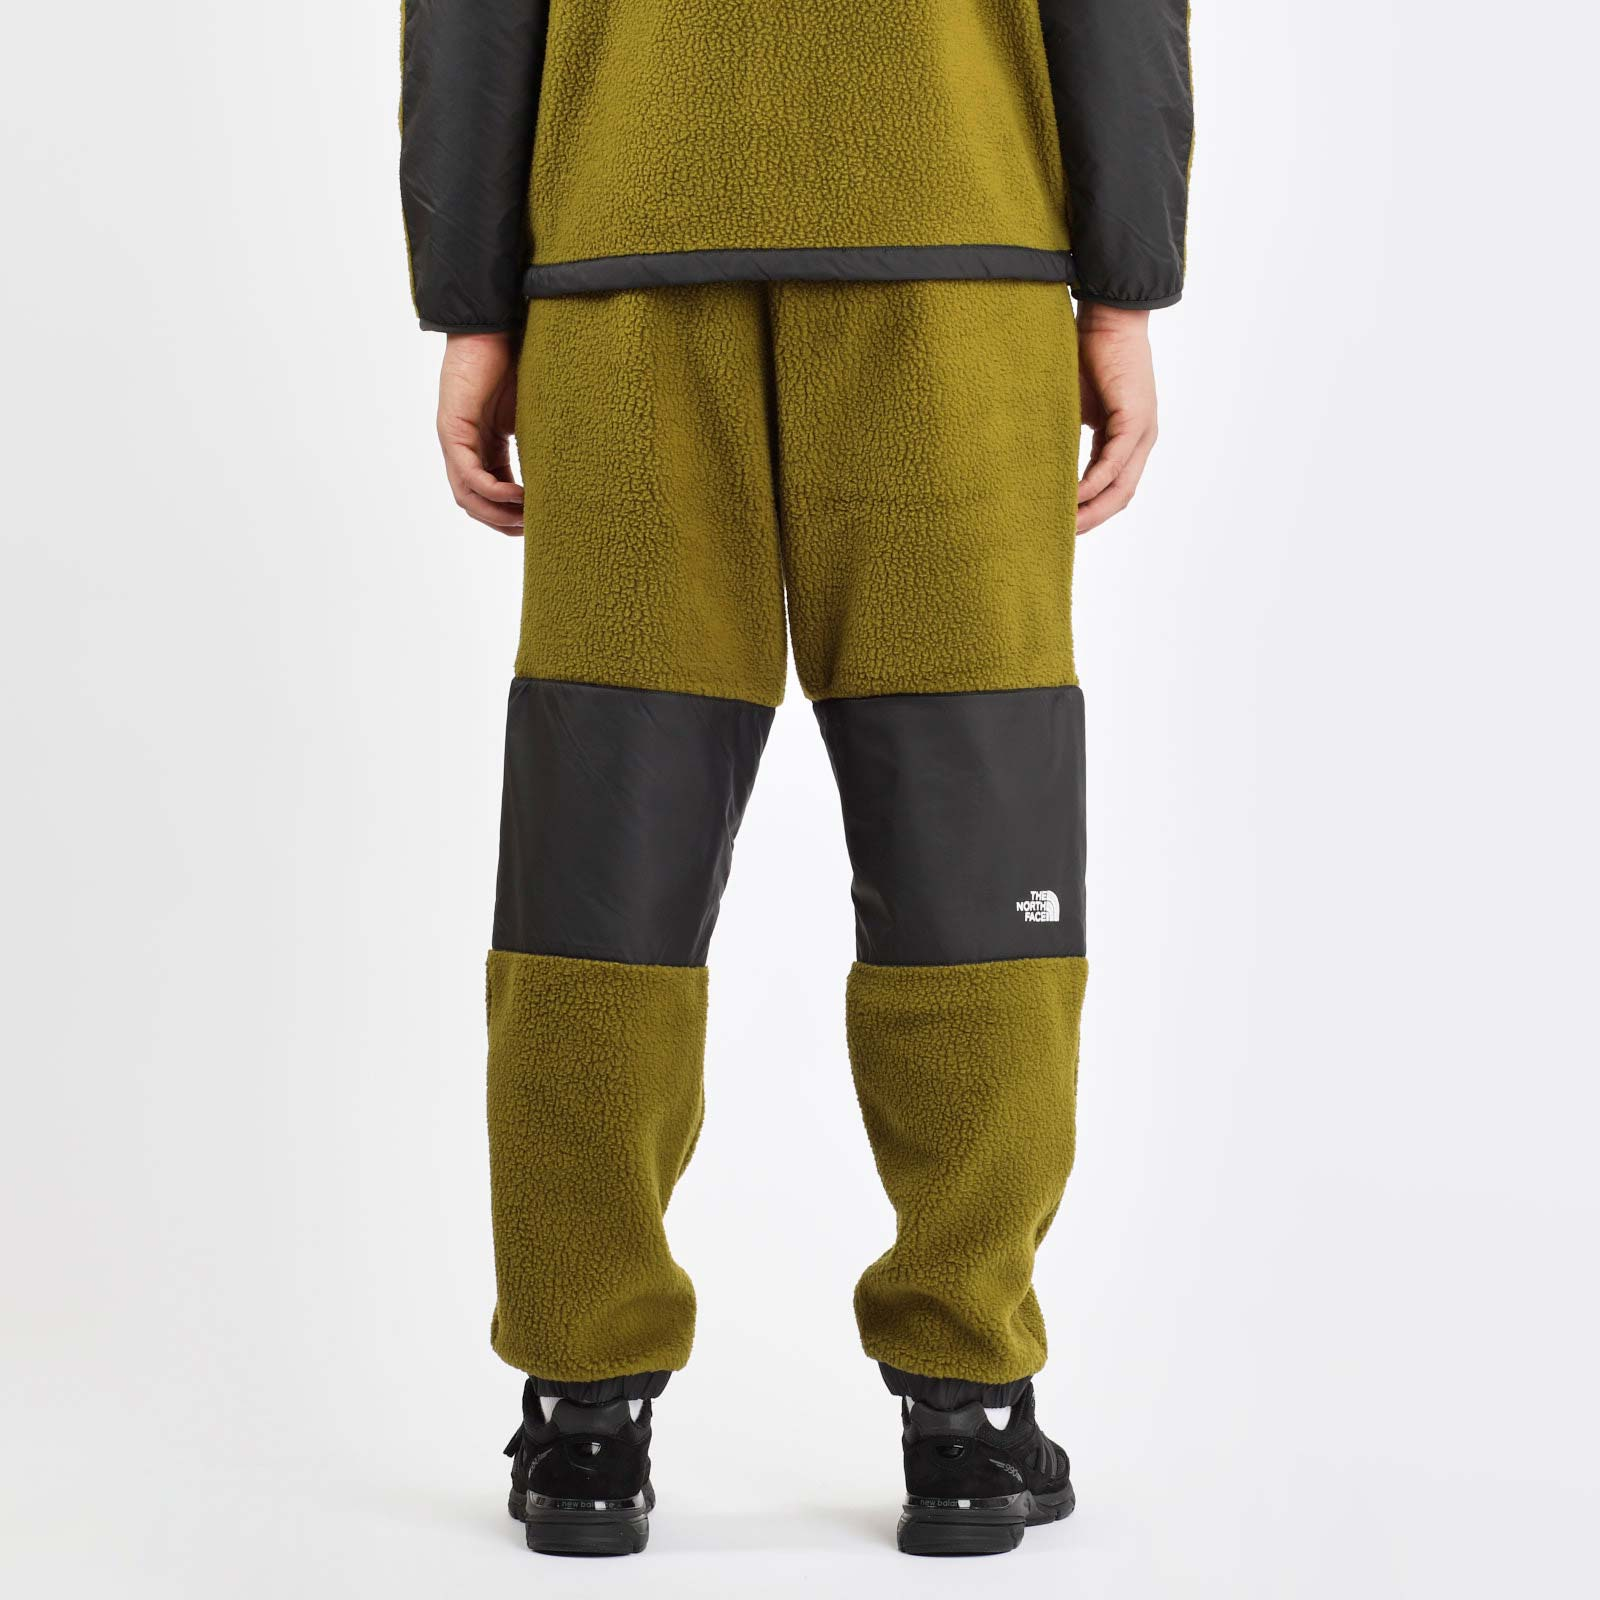 a26de21c3 The North Face Denali Fleece Pant - T93l2jbebreg - Sneakersnstuff ...